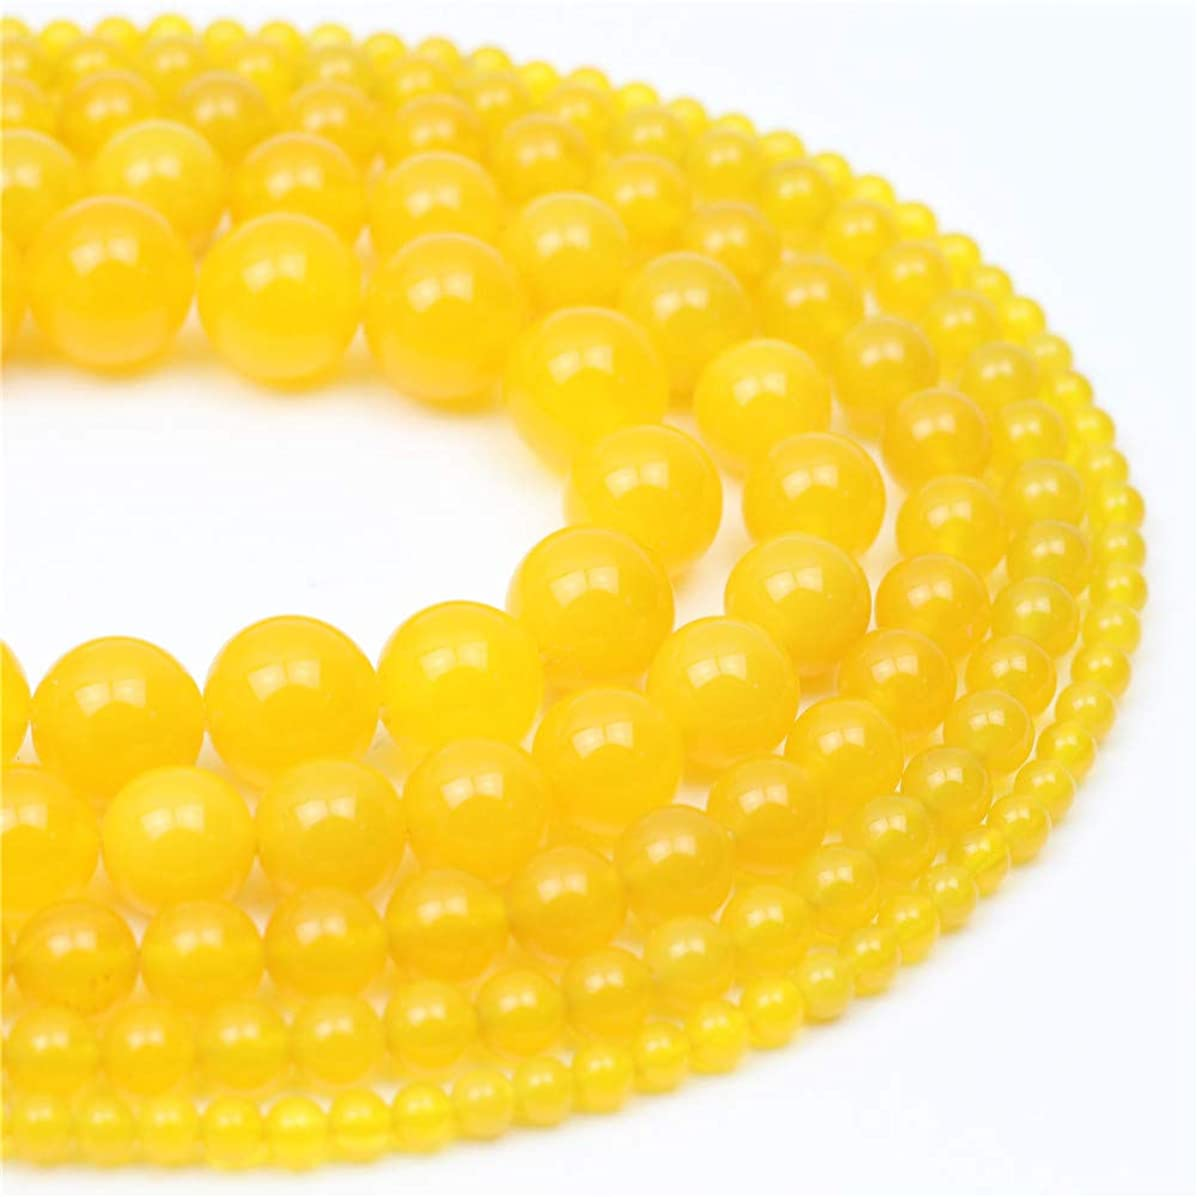 Oameusa 10mm Yellow Agate Beads Natural Round Smooth Beads Gemstone Beads Loose Beads Agate Beads for Jewelry Making 15